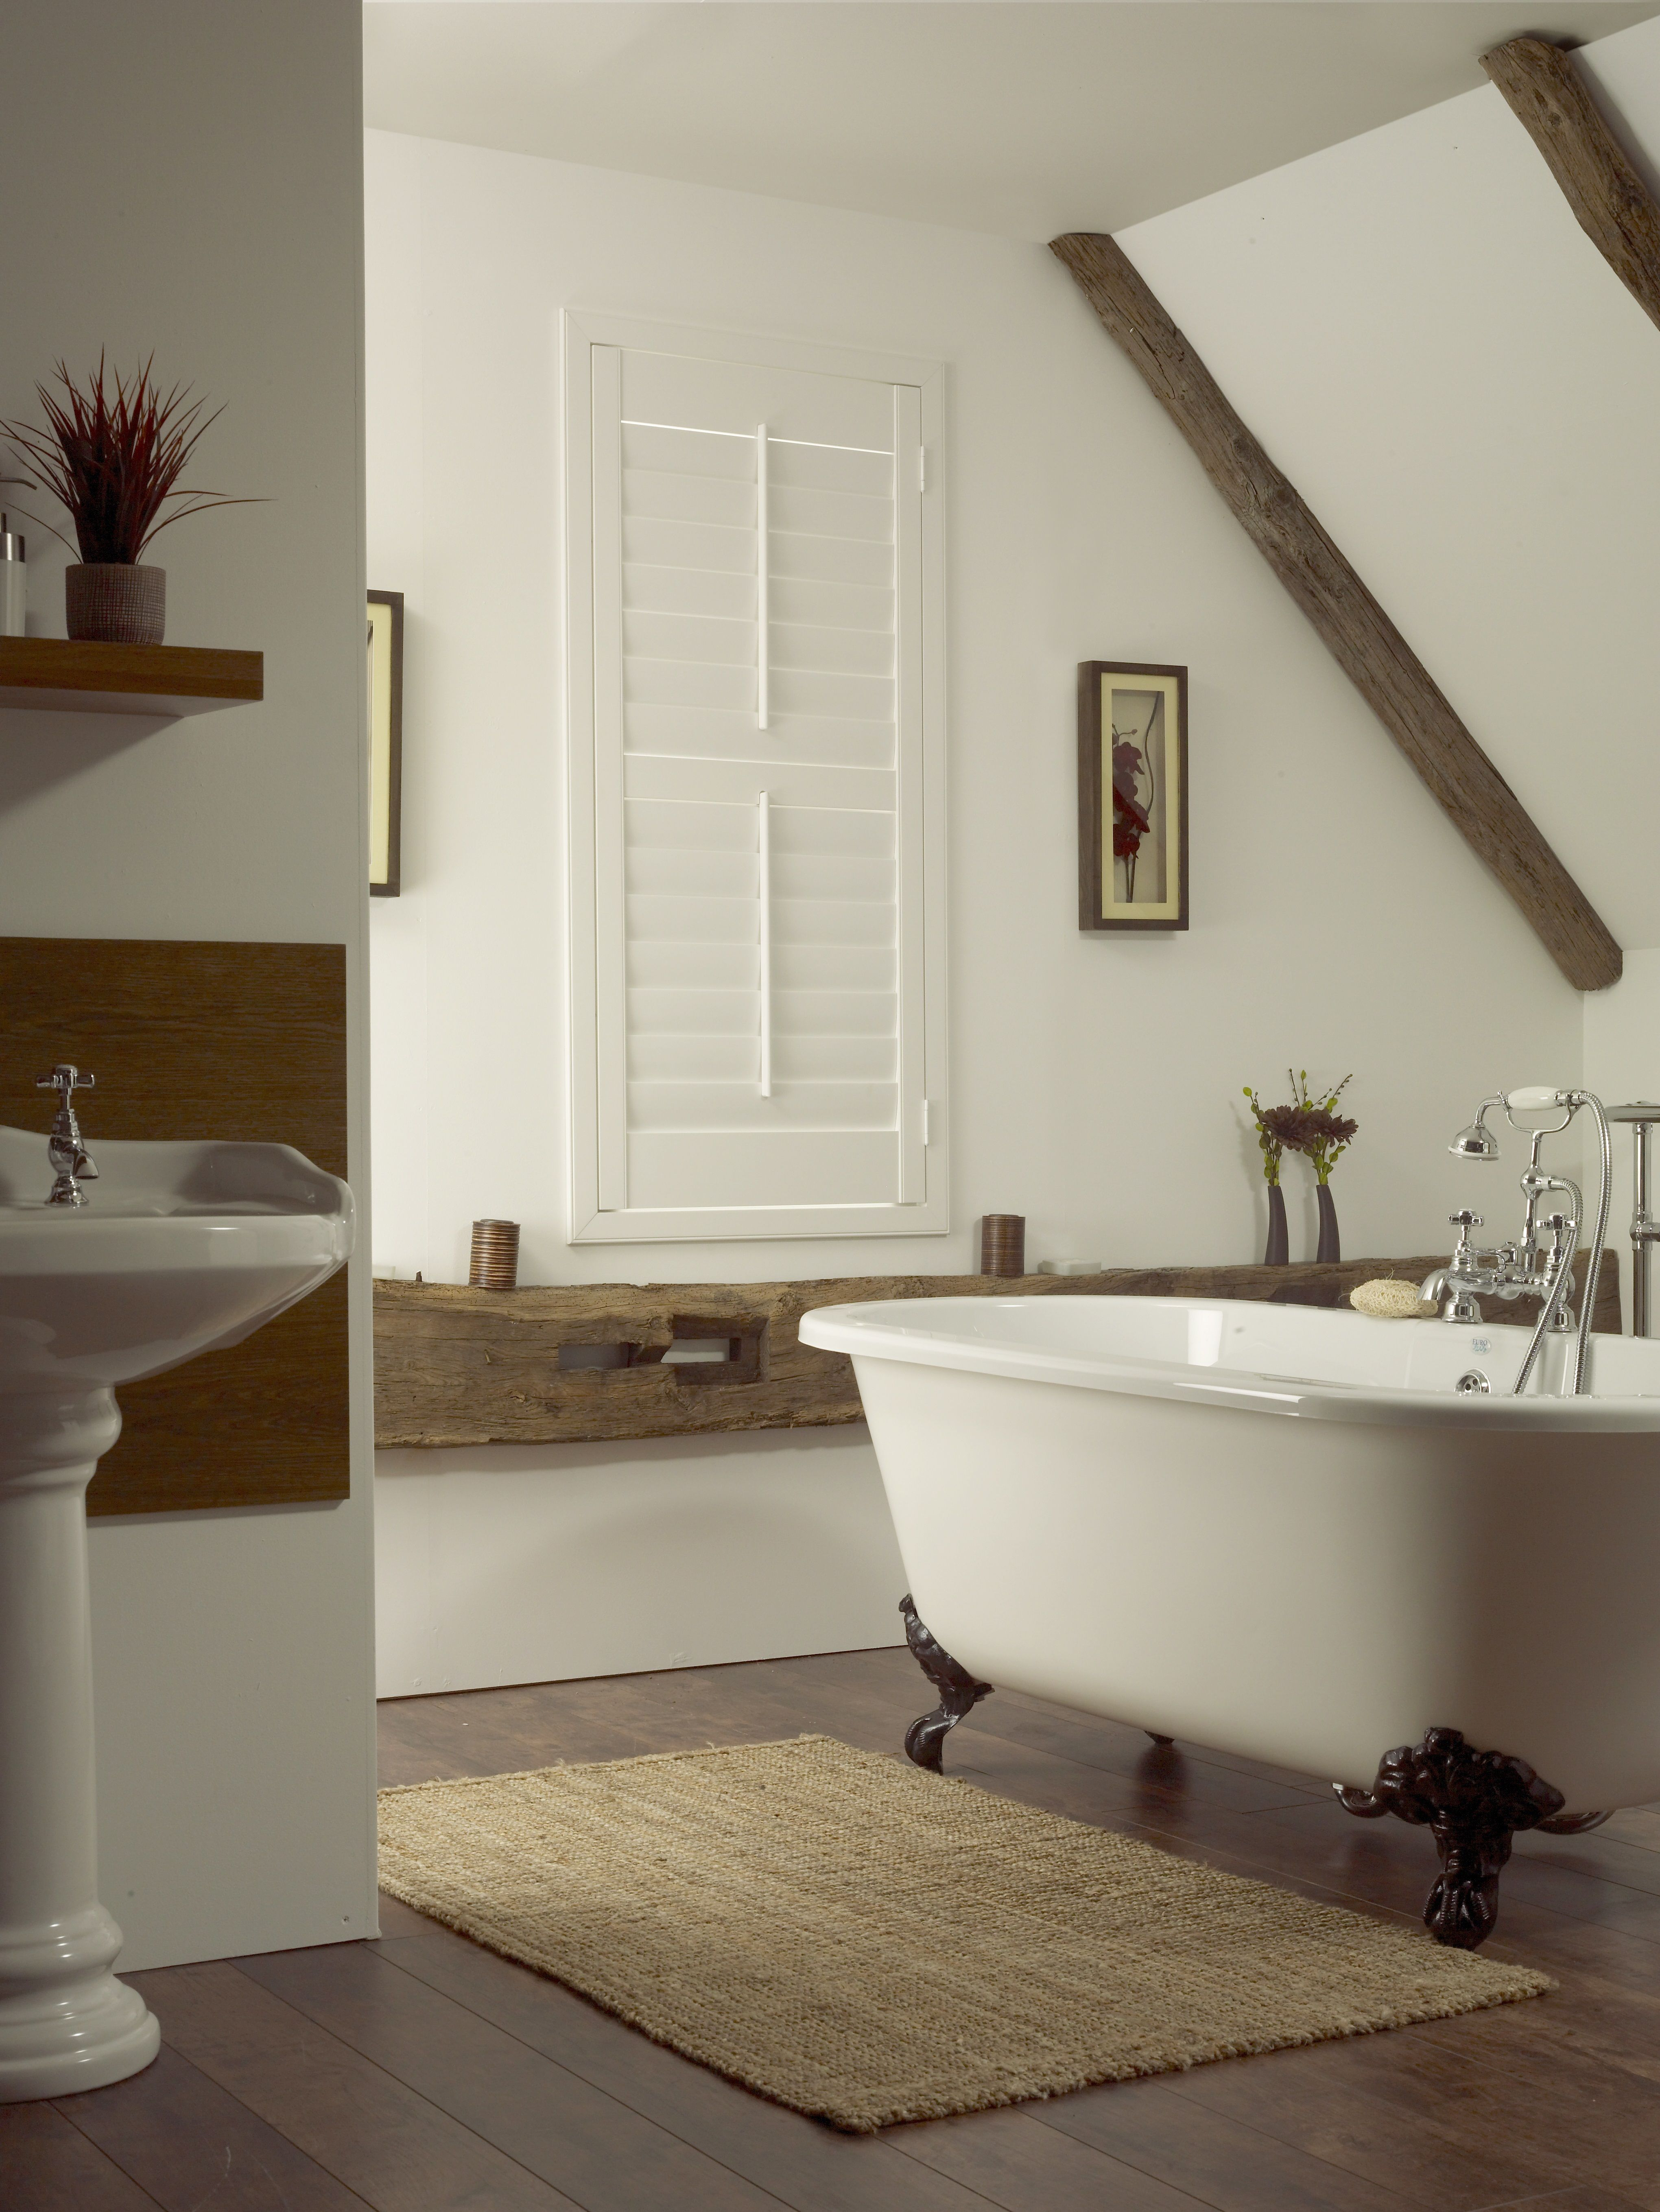 White Bathroom Shutters by Apollo Blinds. Modern window dressing ...